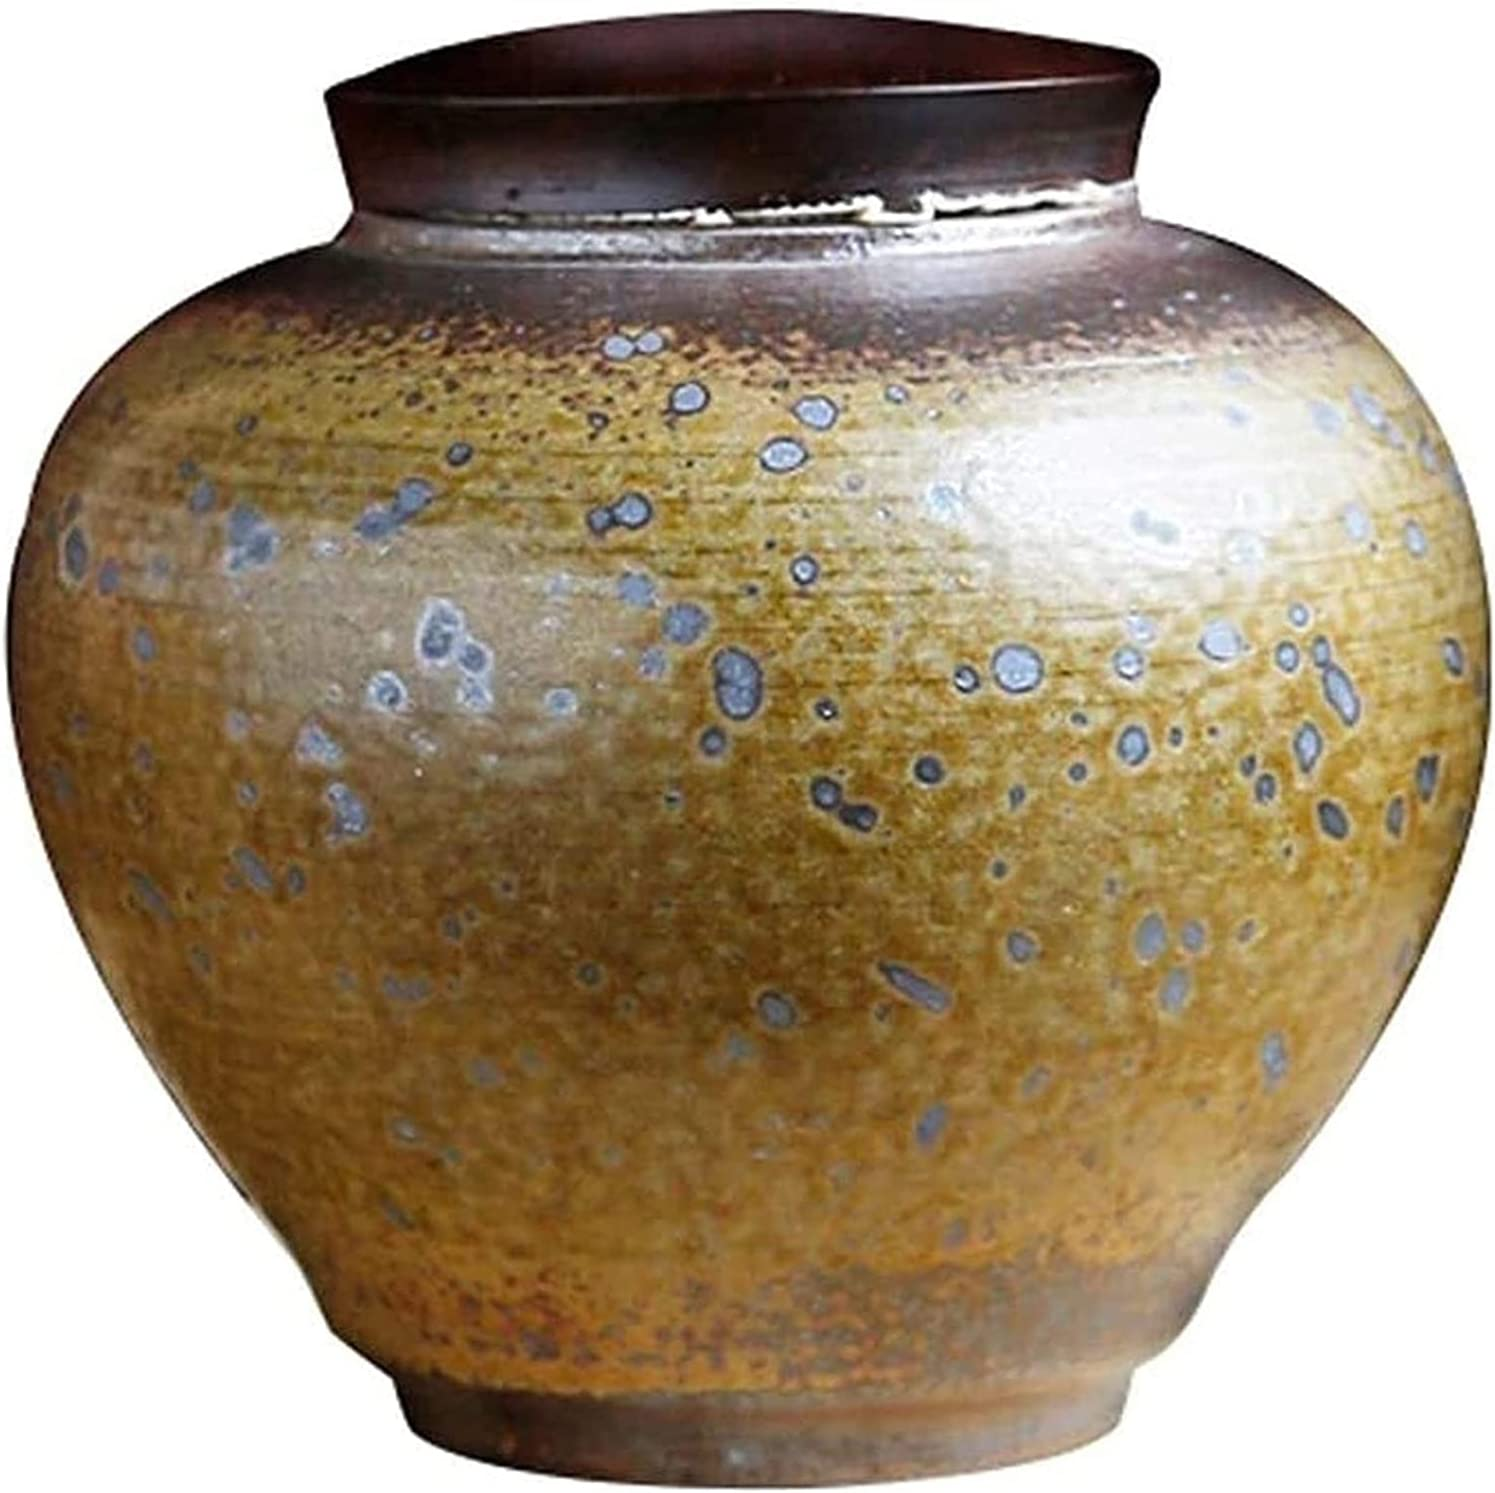 MTFZD Memorial Urn Cremation for Ashes Ceramic Human All stores are sold and Now free shipping Pet